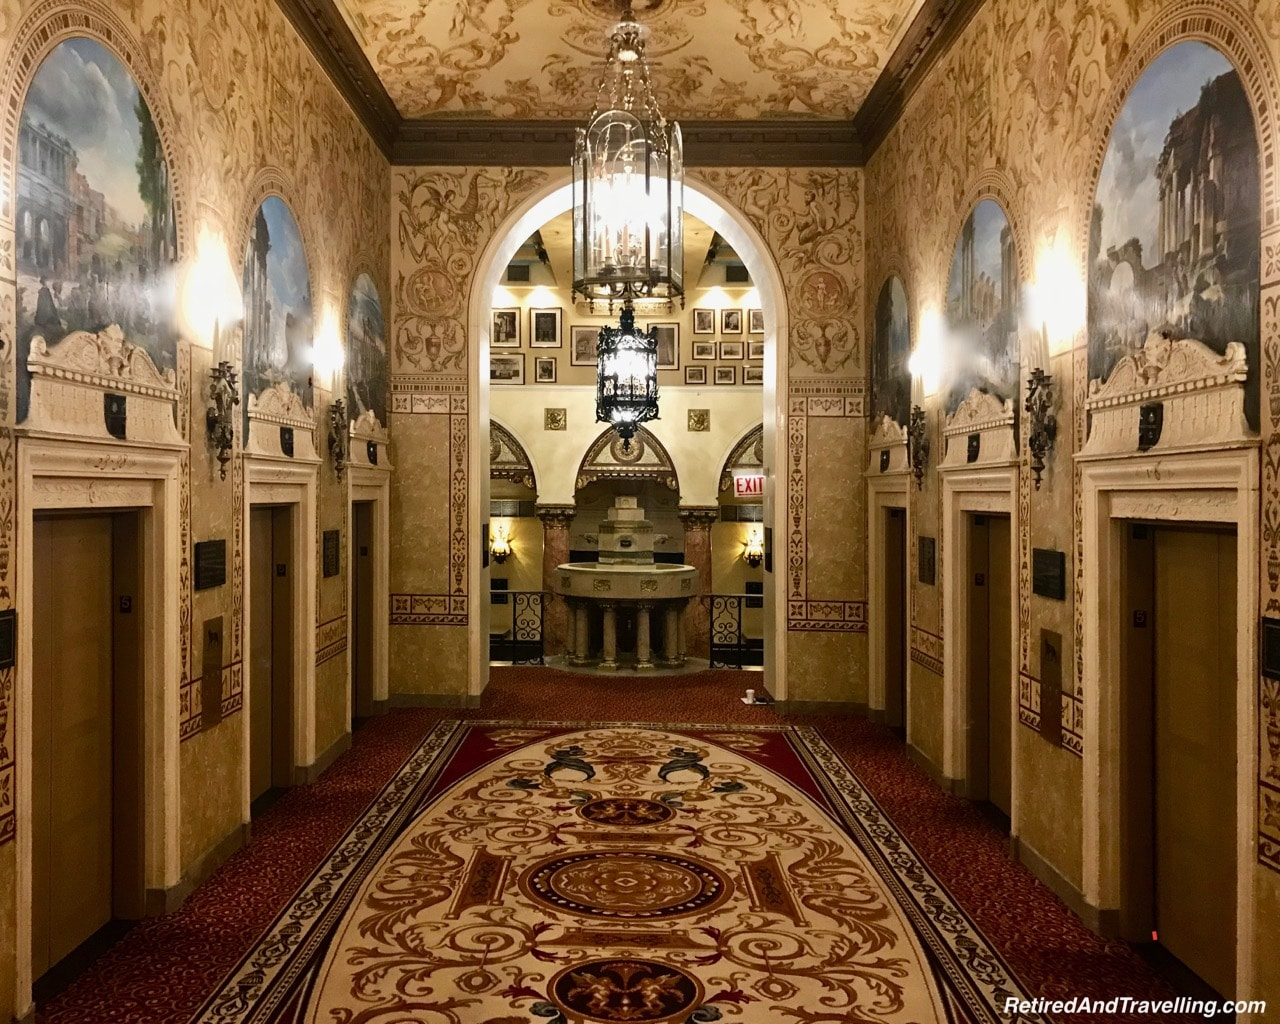 Intercontinental Chicago Magnificent Mile Medinah Athletic Club - Things To Do - 3 Days In Chicago.jpg